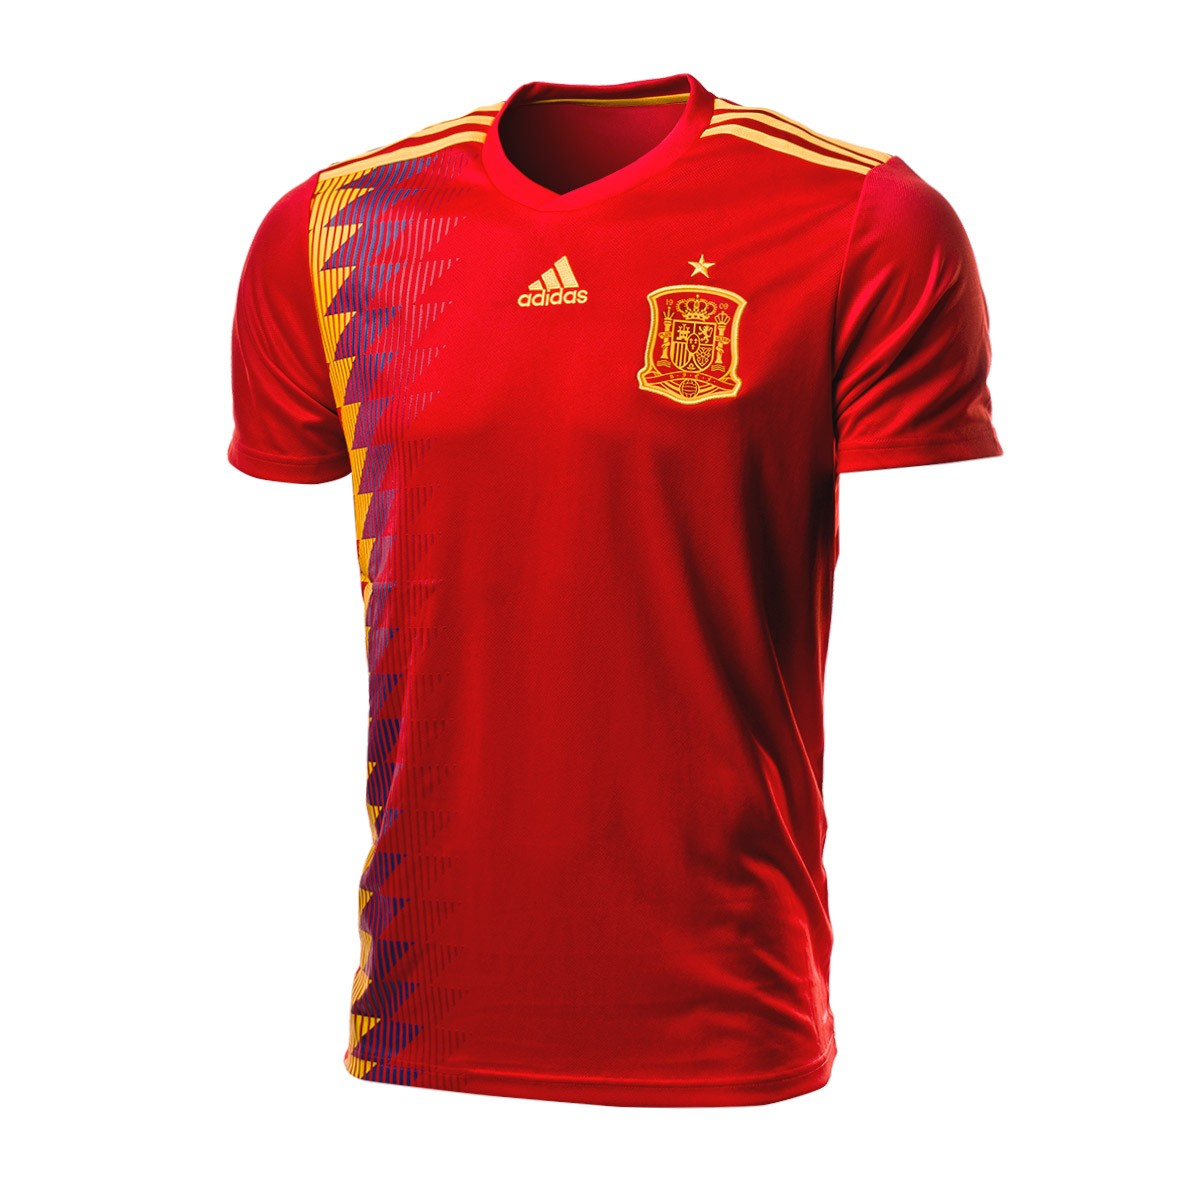 649151e1 Jersey adidas Spain 2017-2018 Home Red-Gold - Football store Fútbol ...